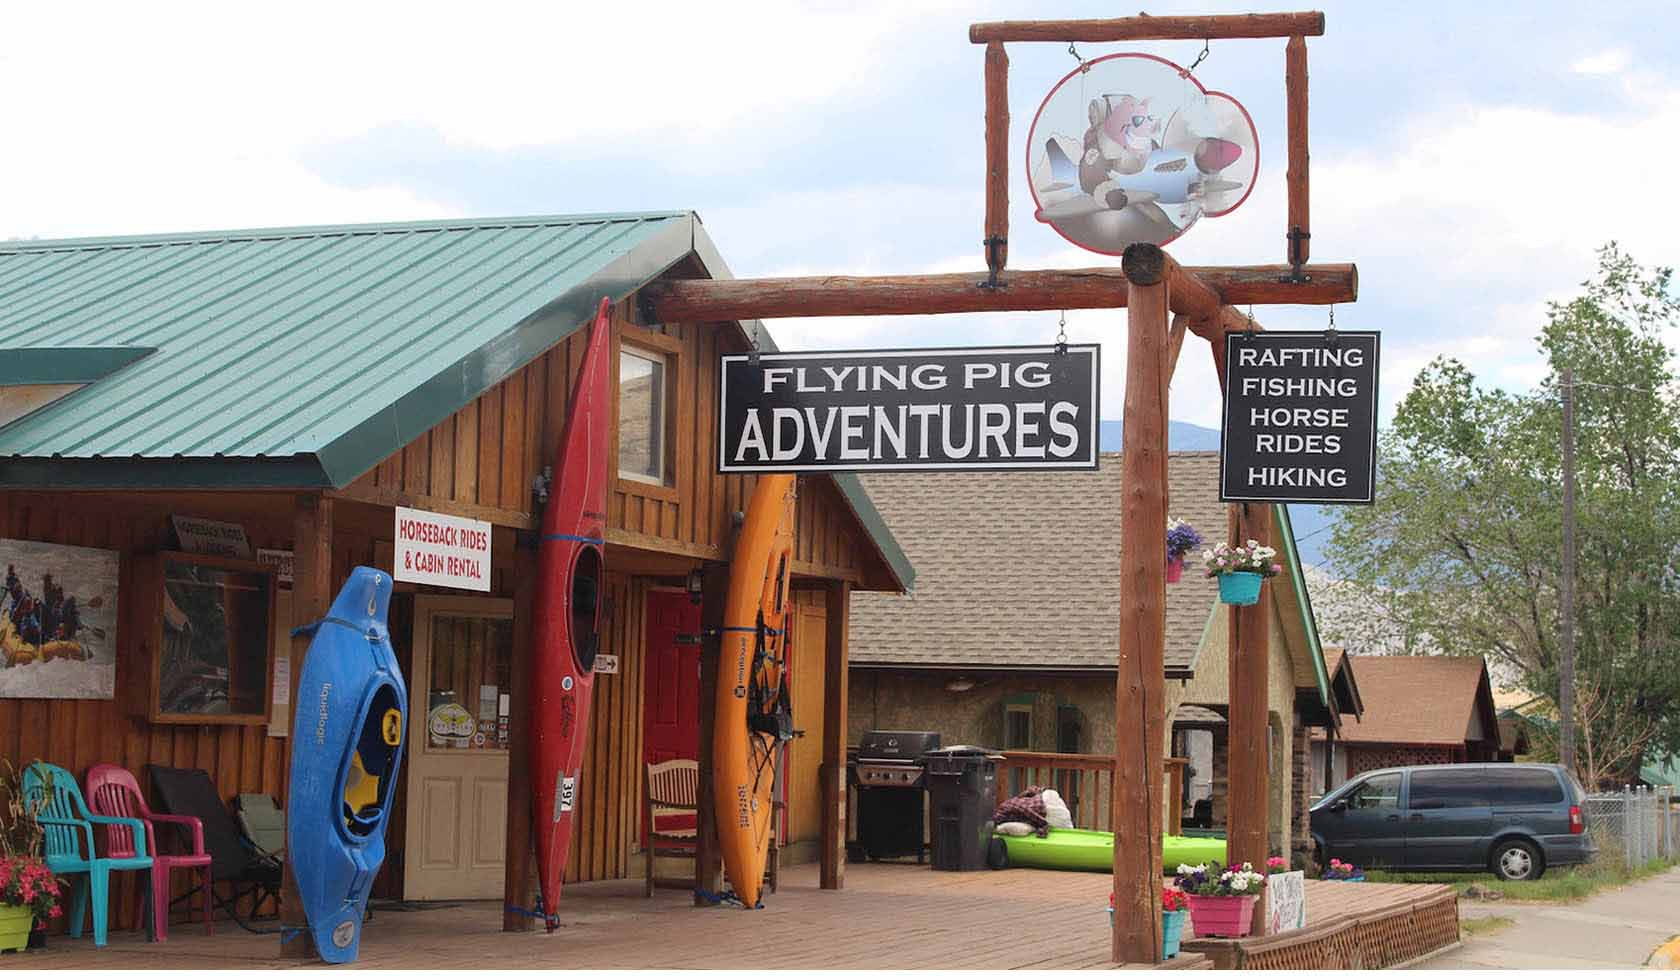 Flying Pig Adventure Company profile image